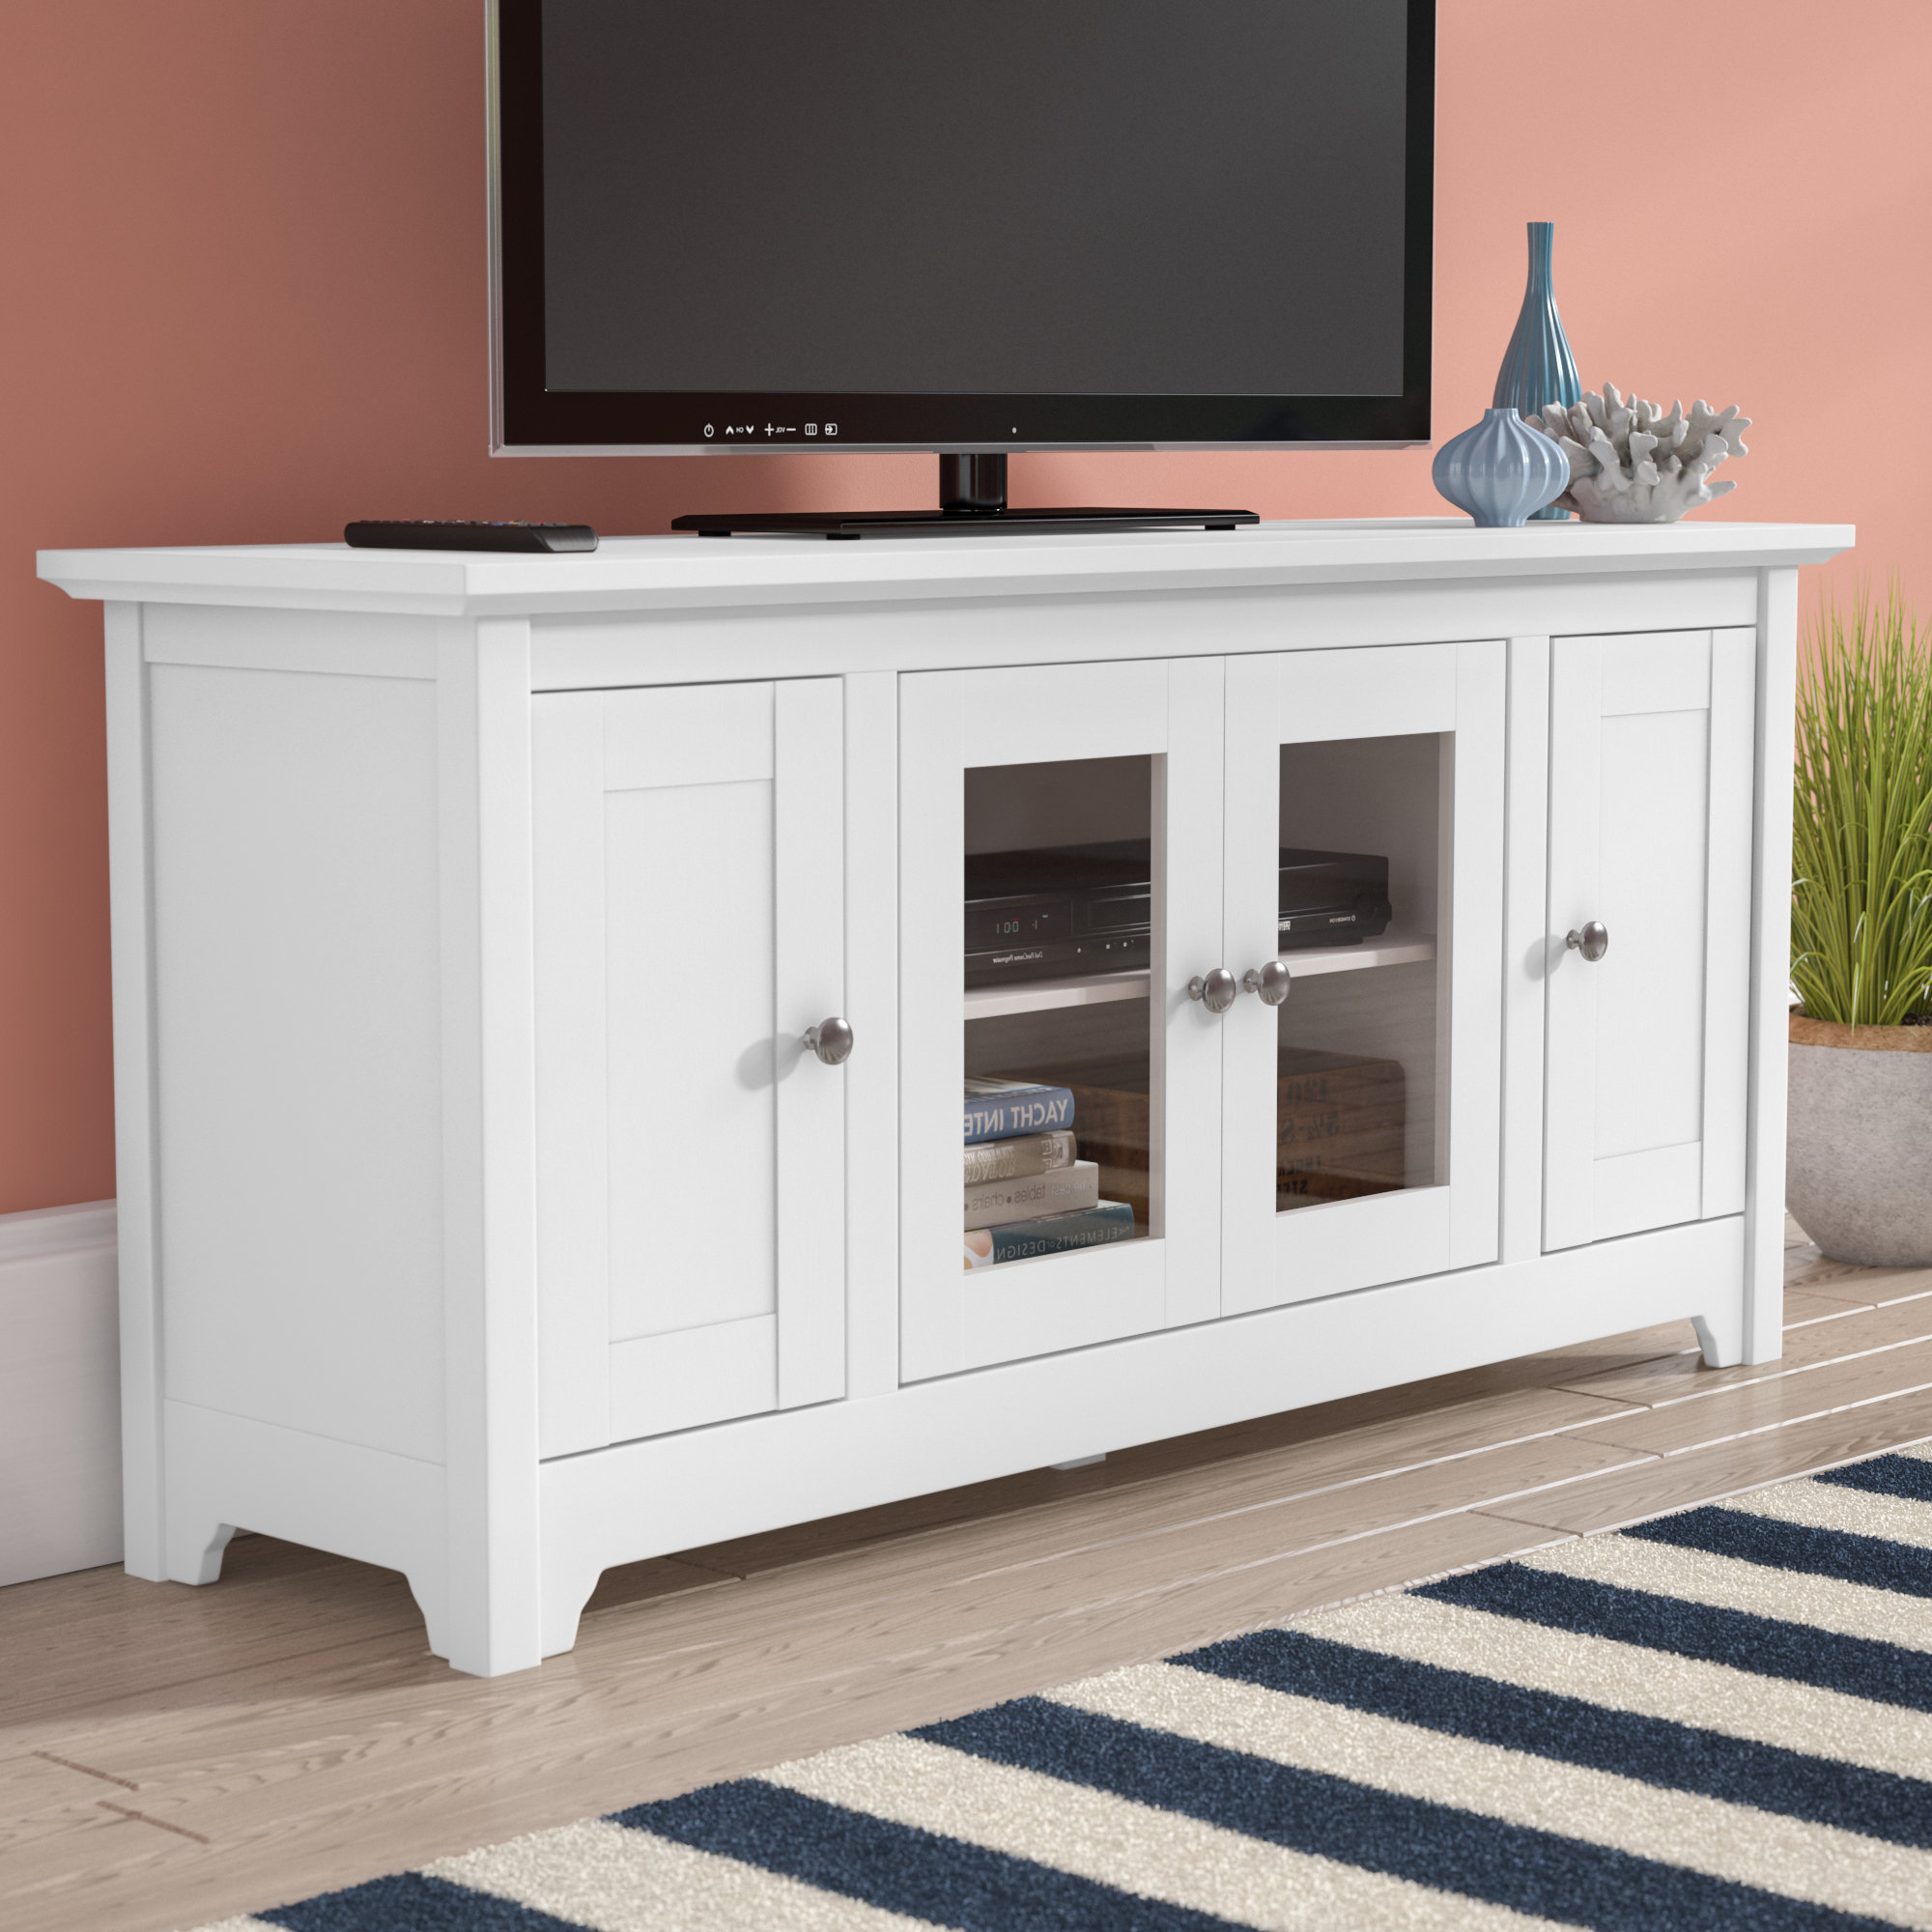 72 Inch Tv Stand | Wayfair Throughout Kenzie 72 Inch Open Display Tv Stands (View 6 of 20)